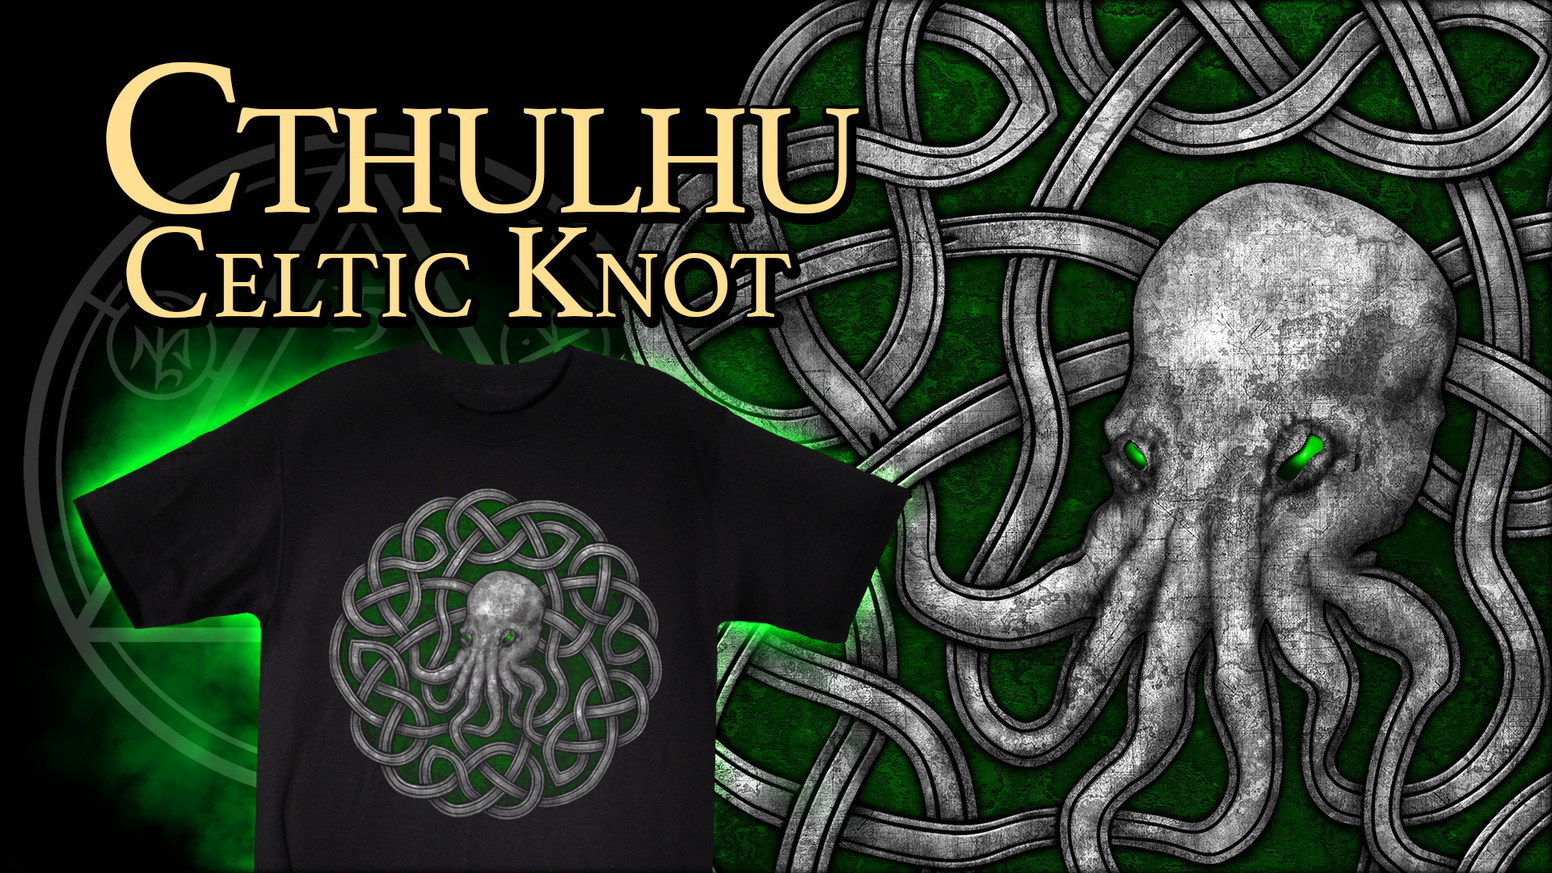 b9899e1e0 This limited edition Cthulhu Celtic Knot t-shirt design celebrates 15 years  of Sigh Co